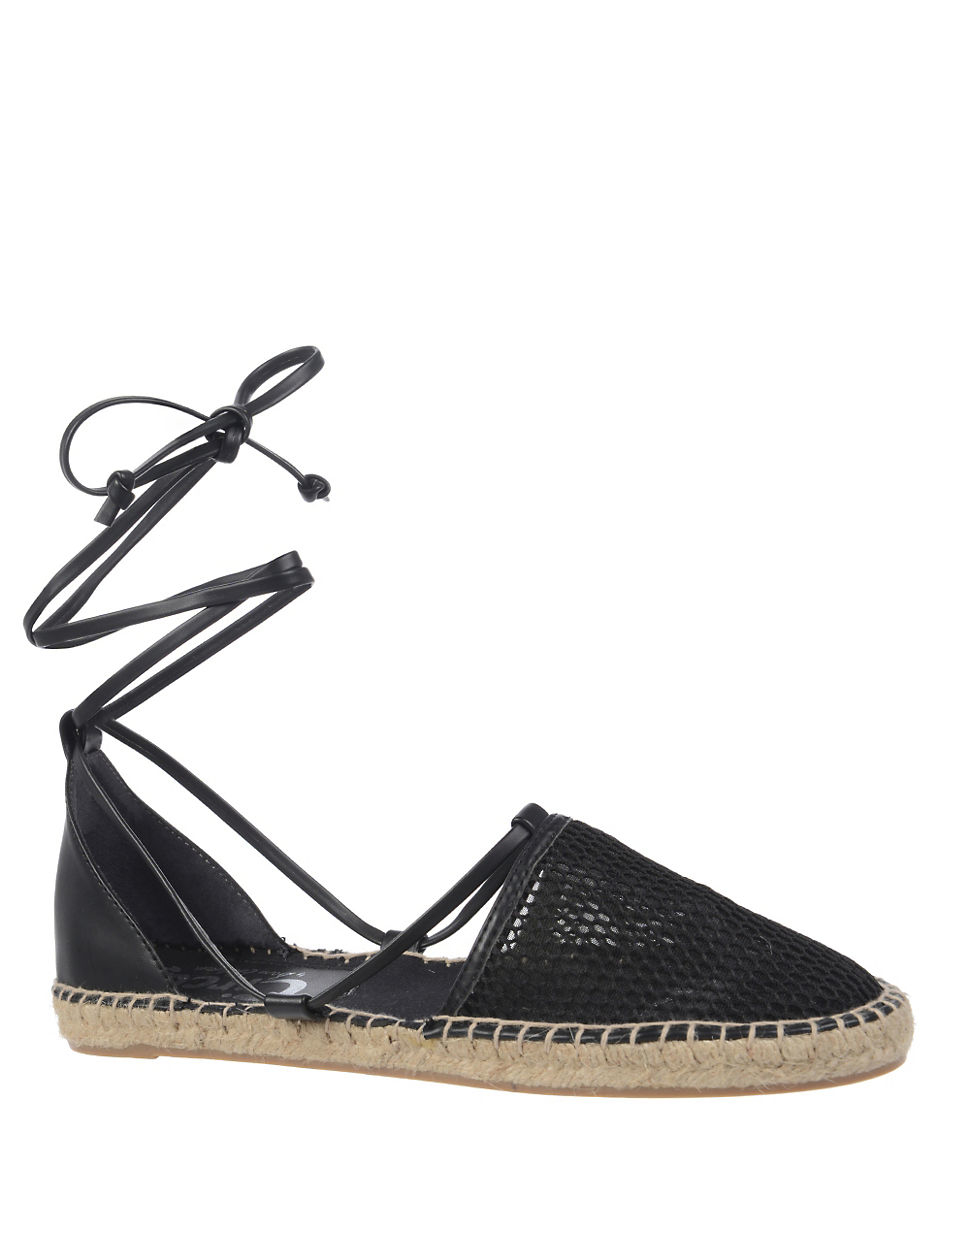 eca072cbcb14 Lyst - Circus By Sam Edelman Lily Espadrille Sandals in Black